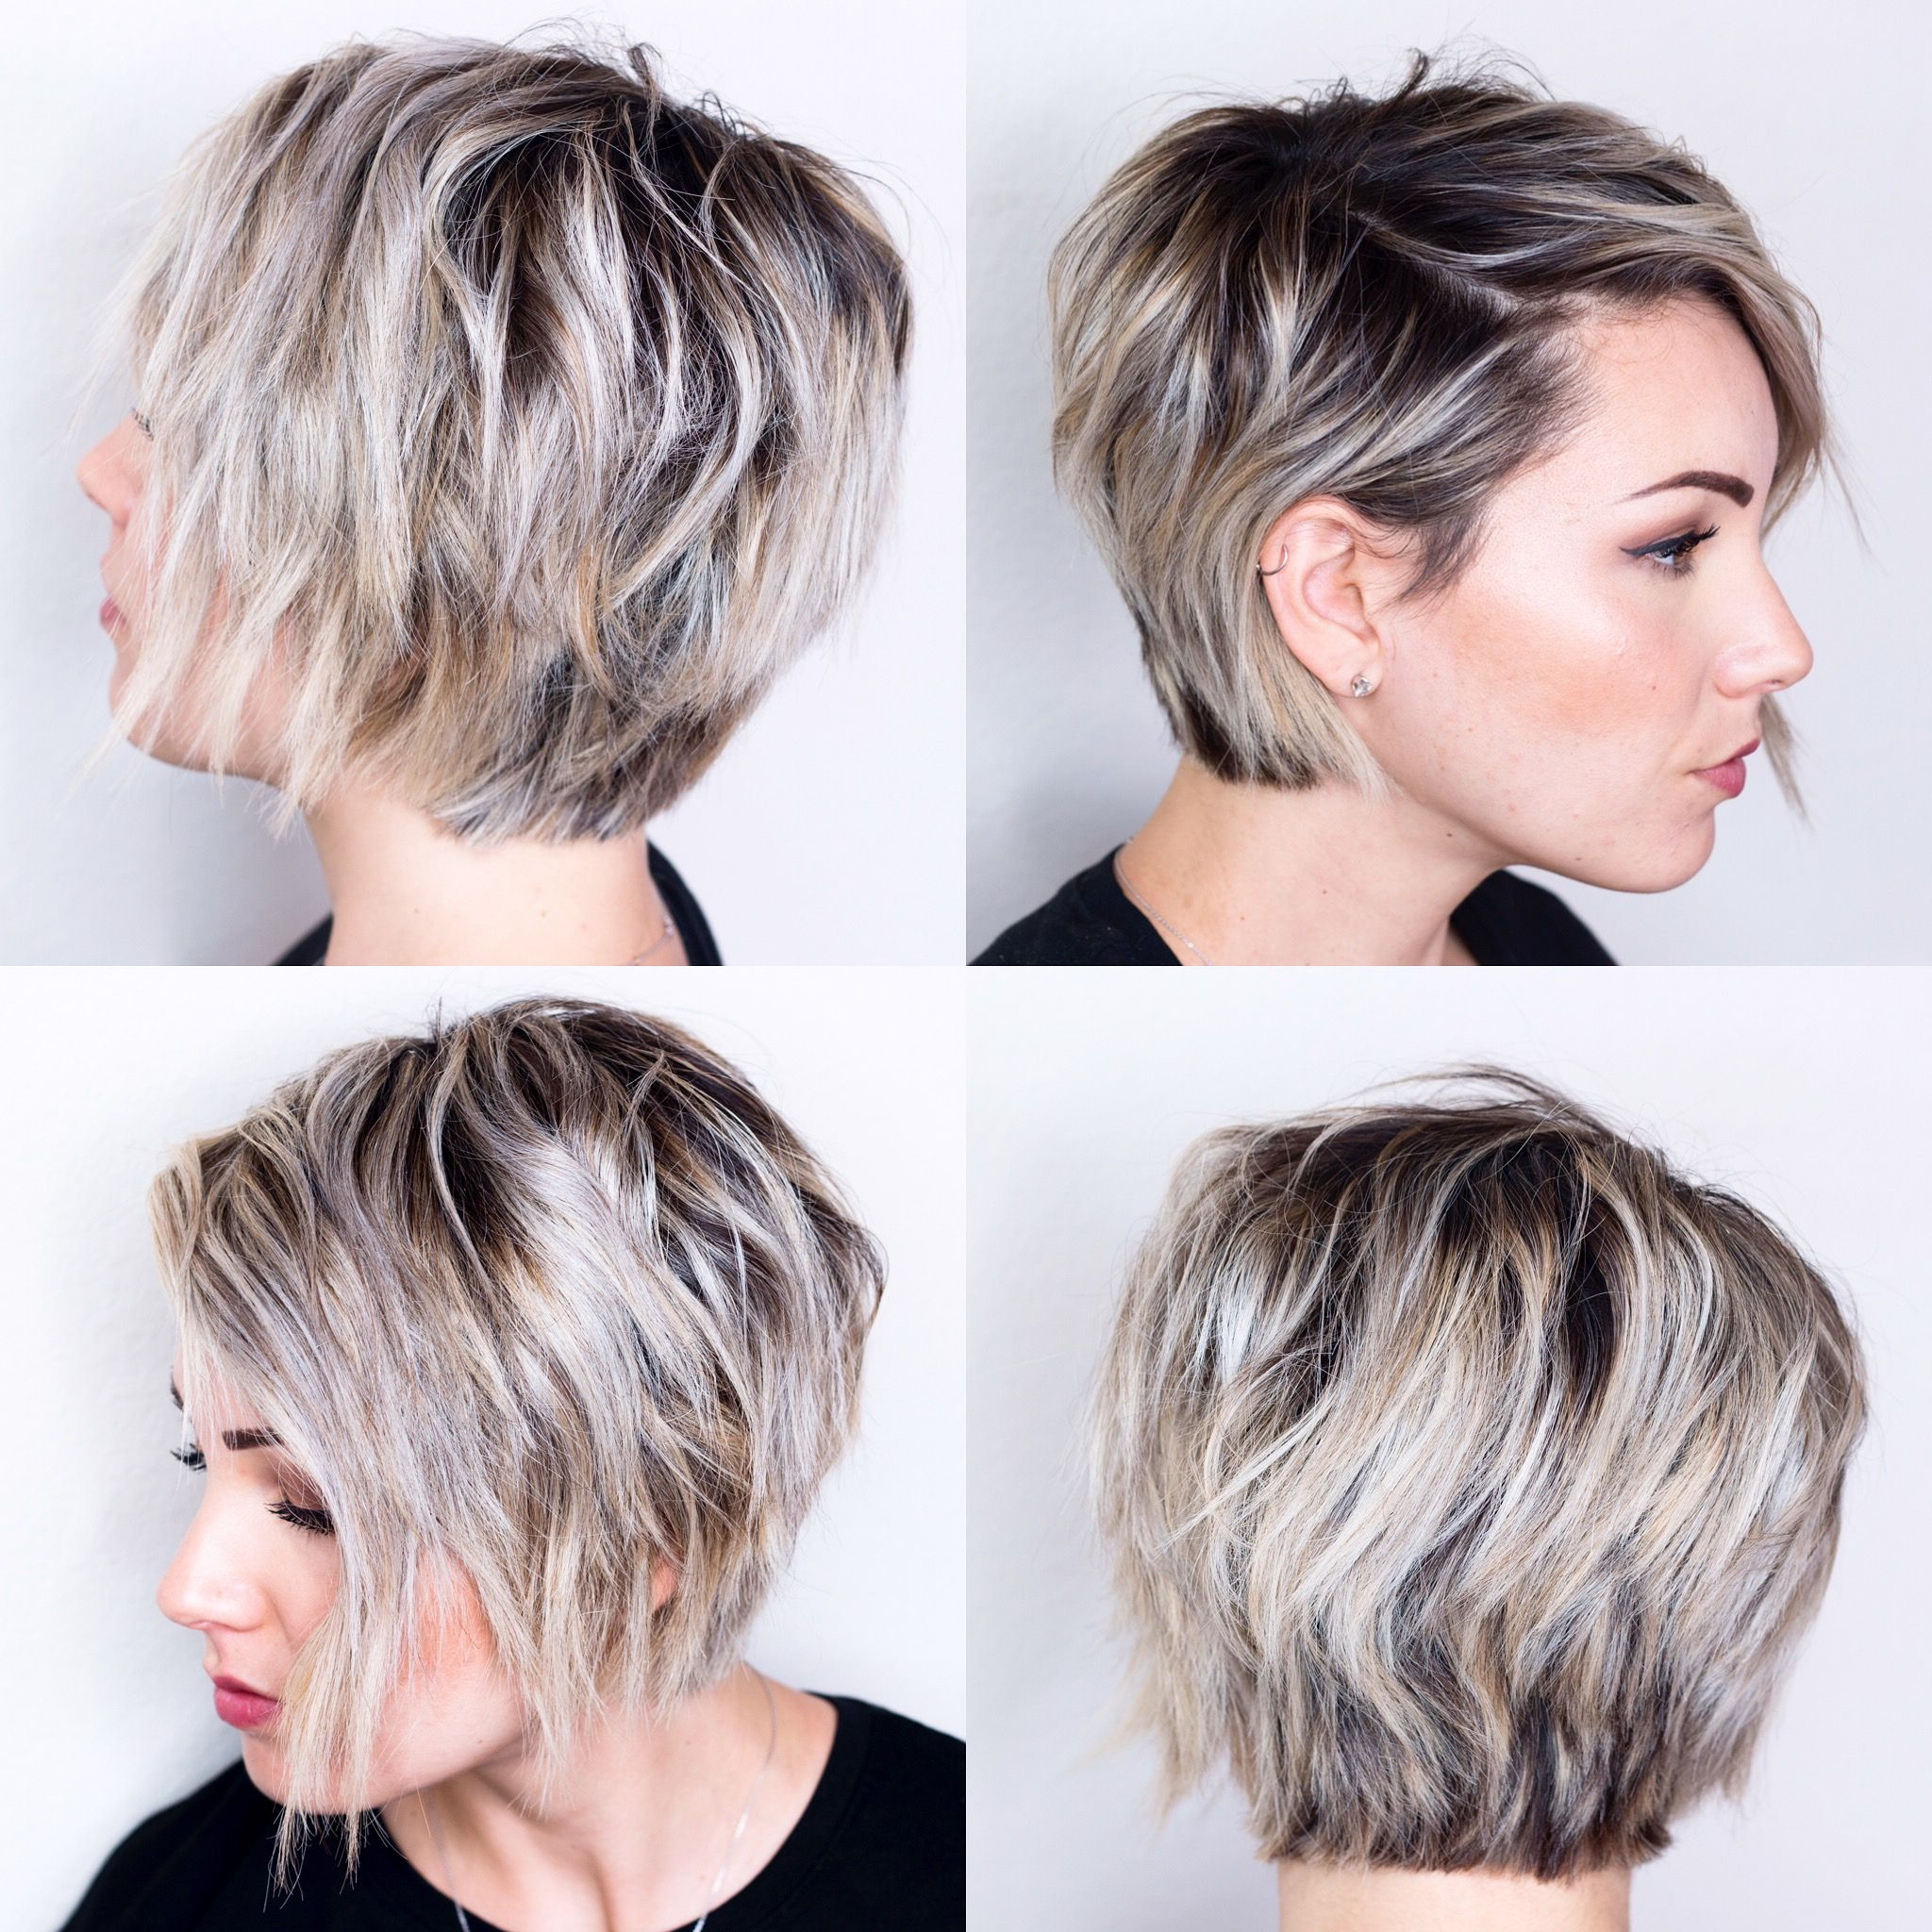 360 View Of Short Hair | H A I R In 2018 | Pinterest | Short Hair Pertaining To Women Short Hairstyles For Oval Faces (View 3 of 25)